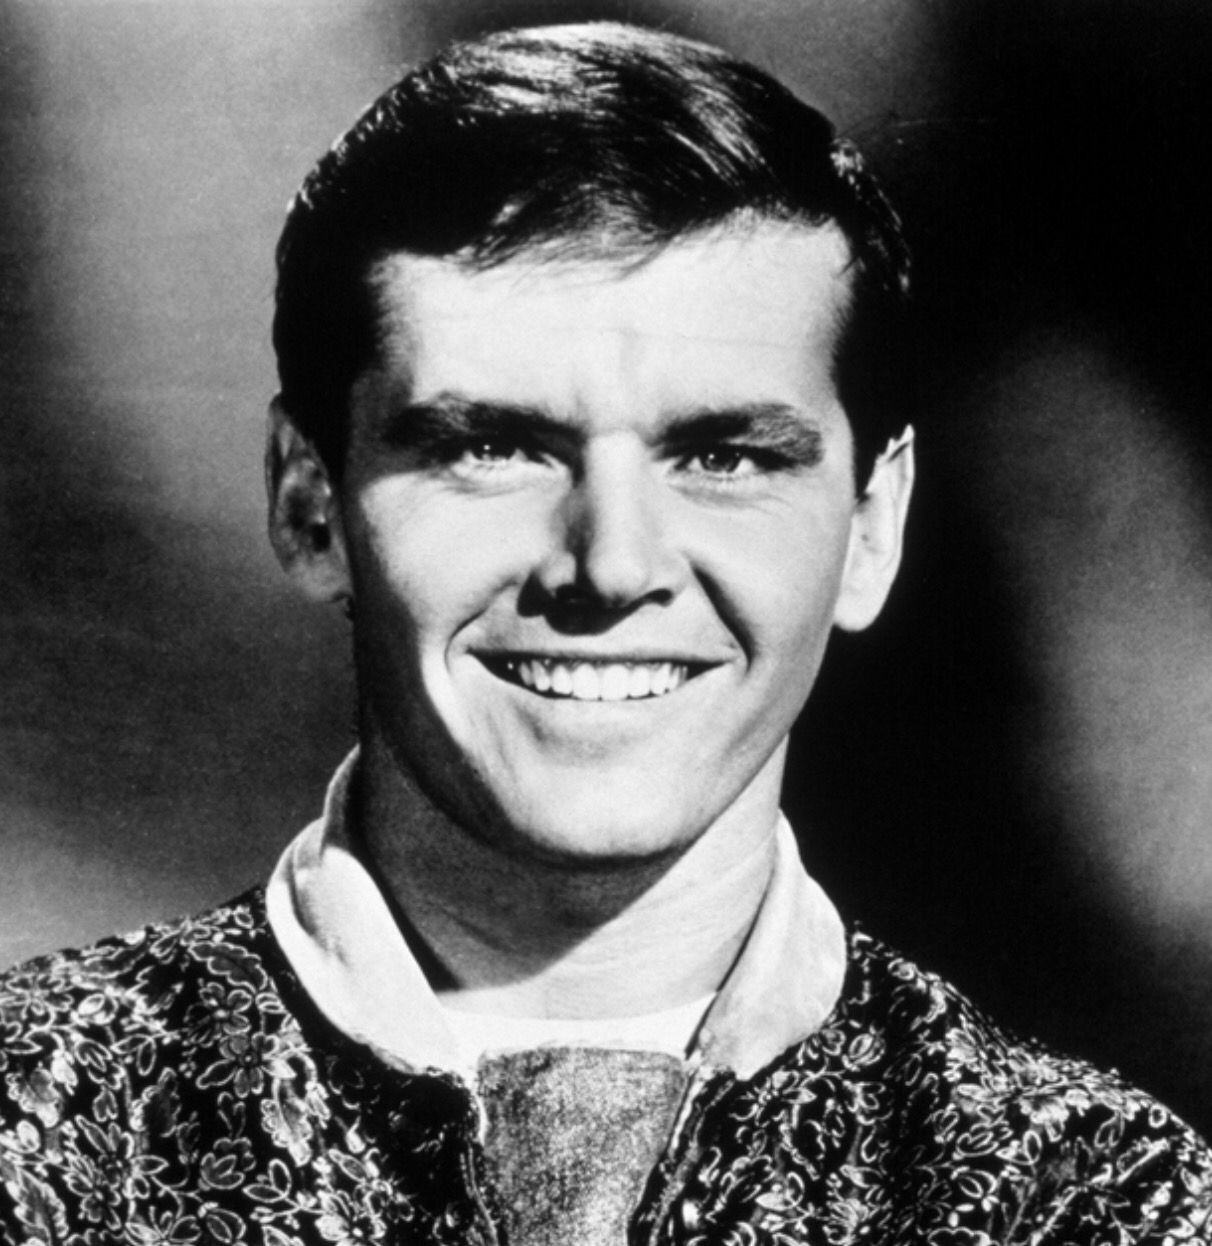 This was young Jack Nicholson in the dentist office in the ...